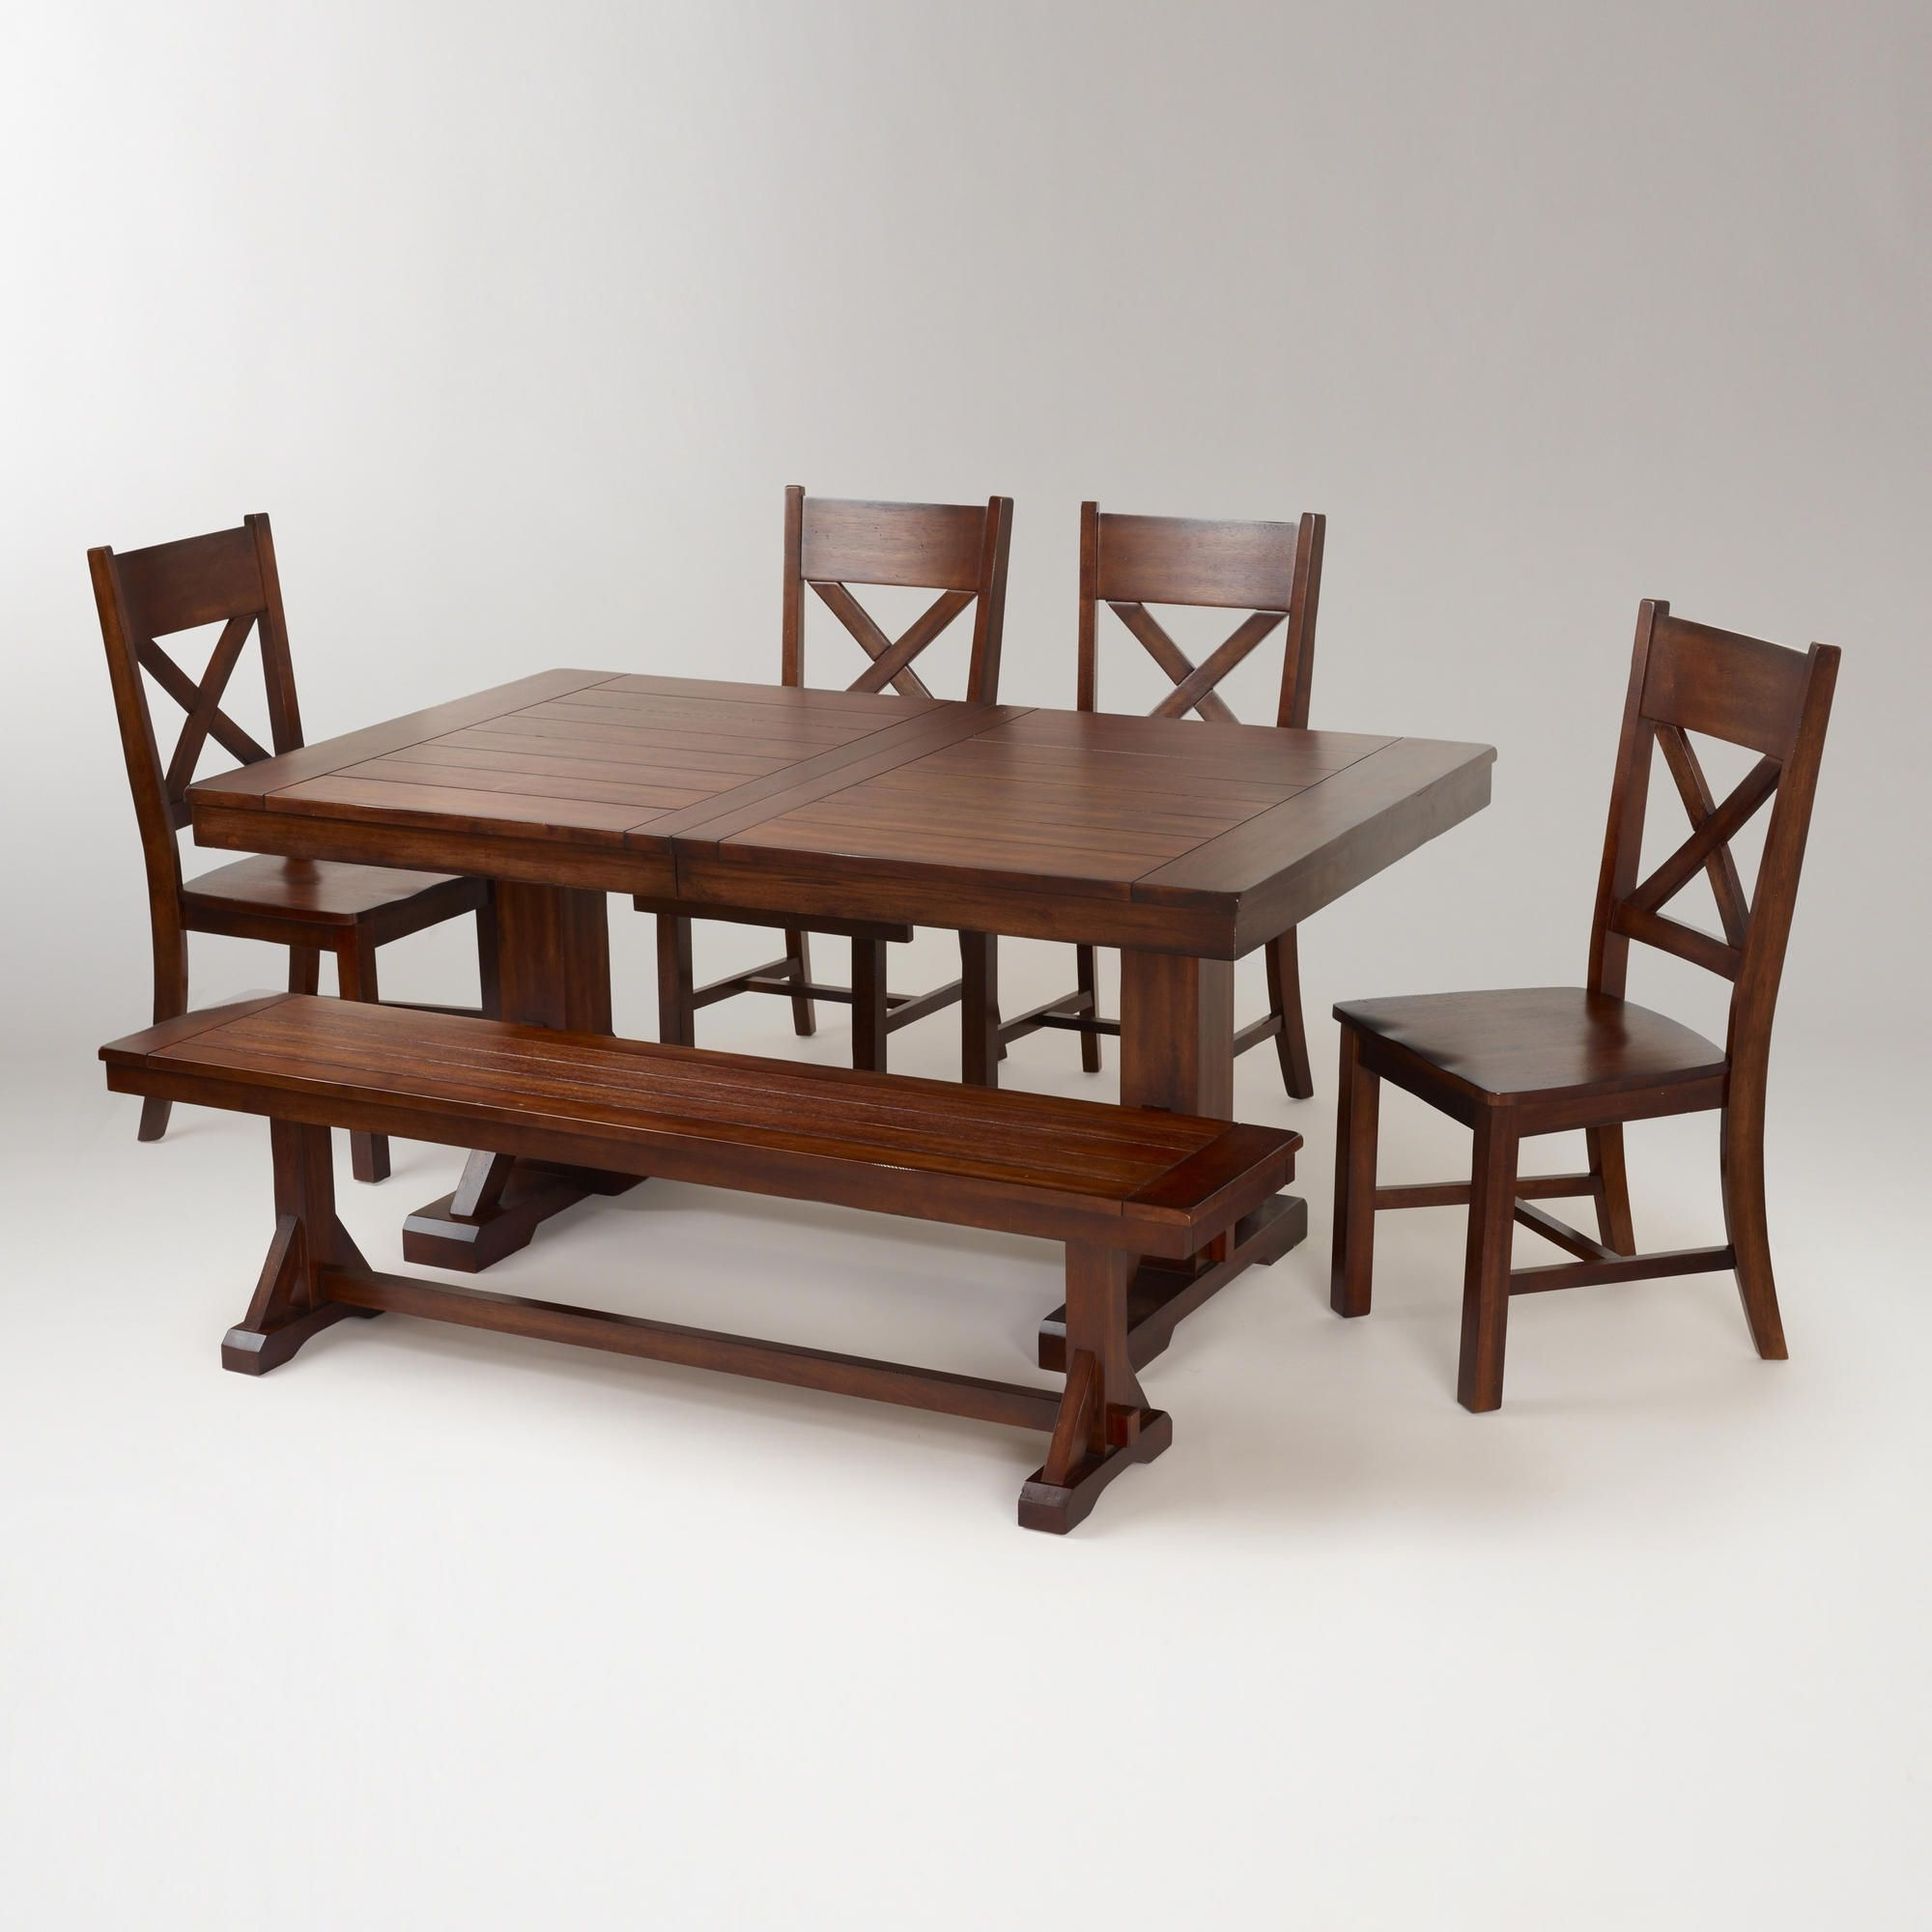 Verona Dining Tables for Well known Mahogany Verona Dining Collection-Dining Tables-Dining Room